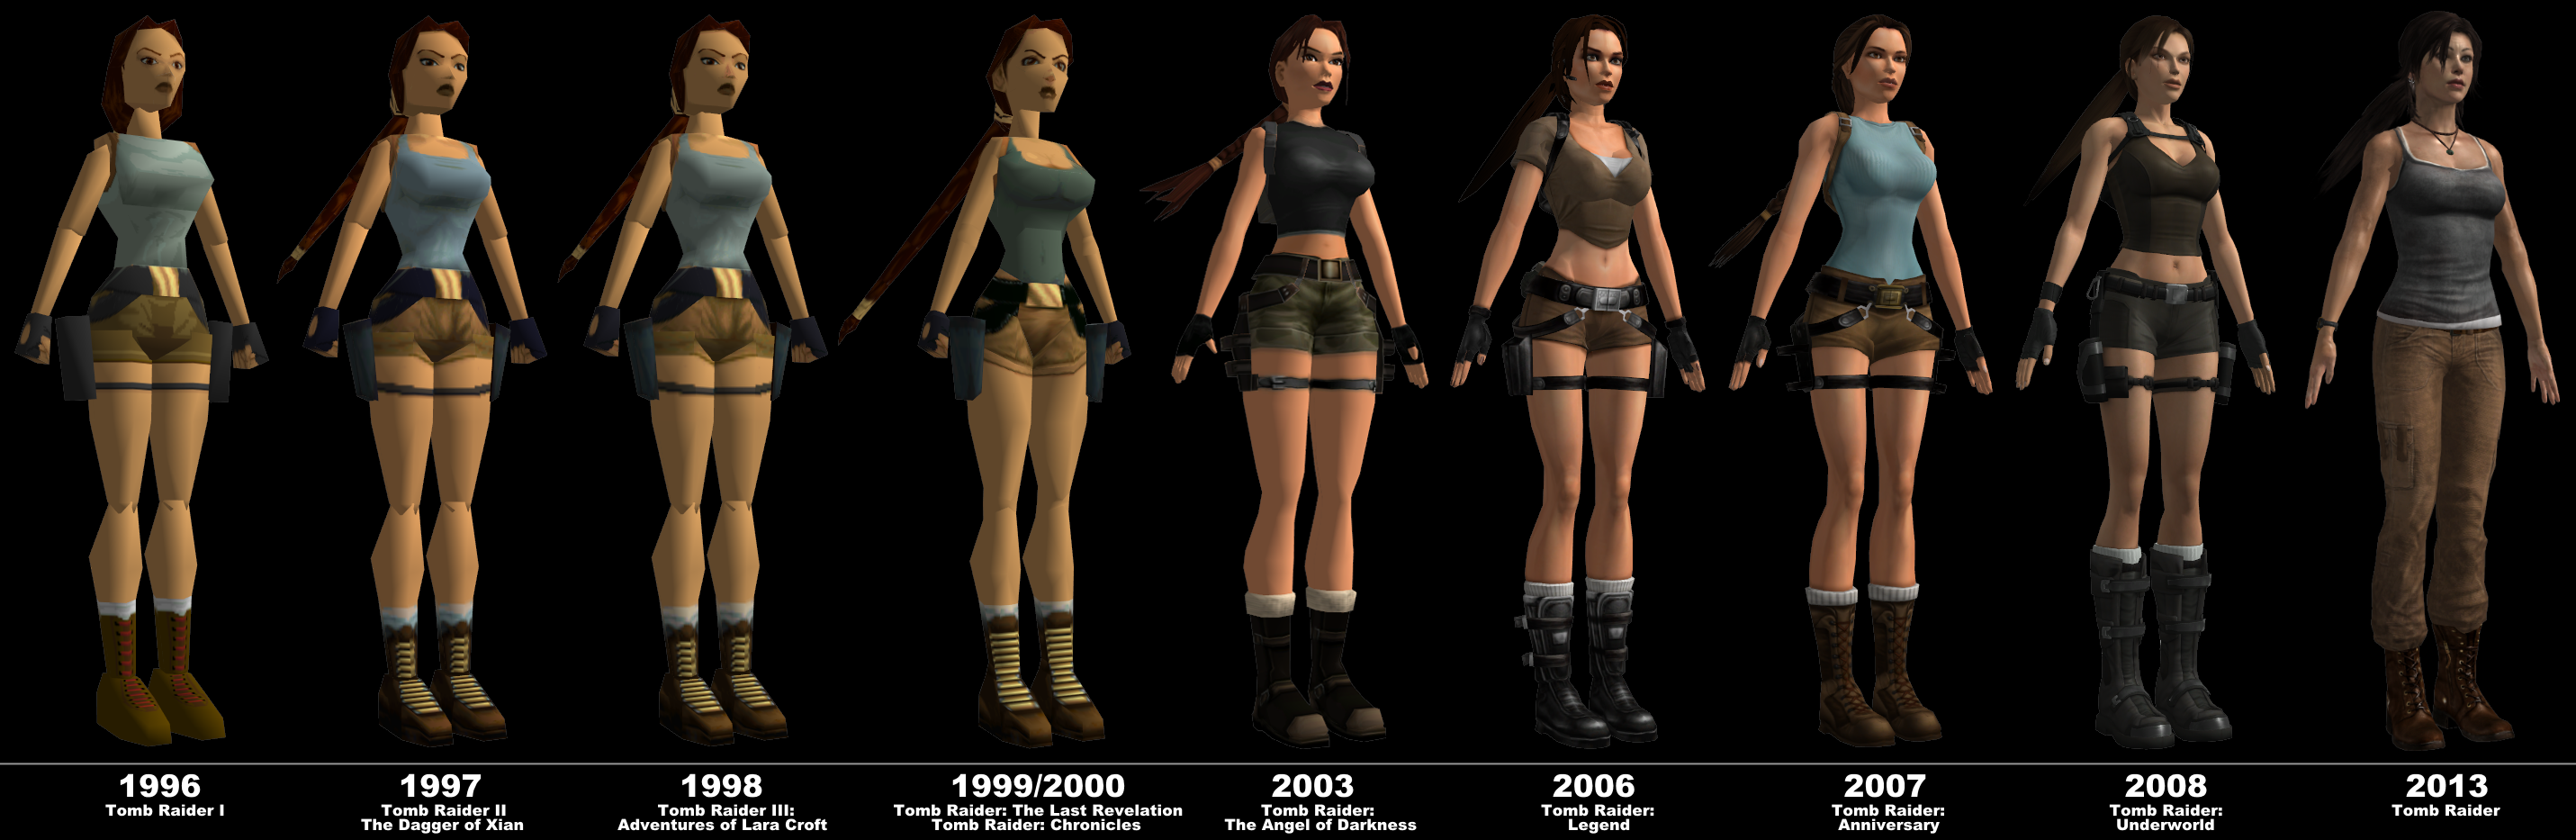 https://upload.wikimedia.org/wikipedia/ru/a/a2/Tomb_Raider_Evolution_Chart.png